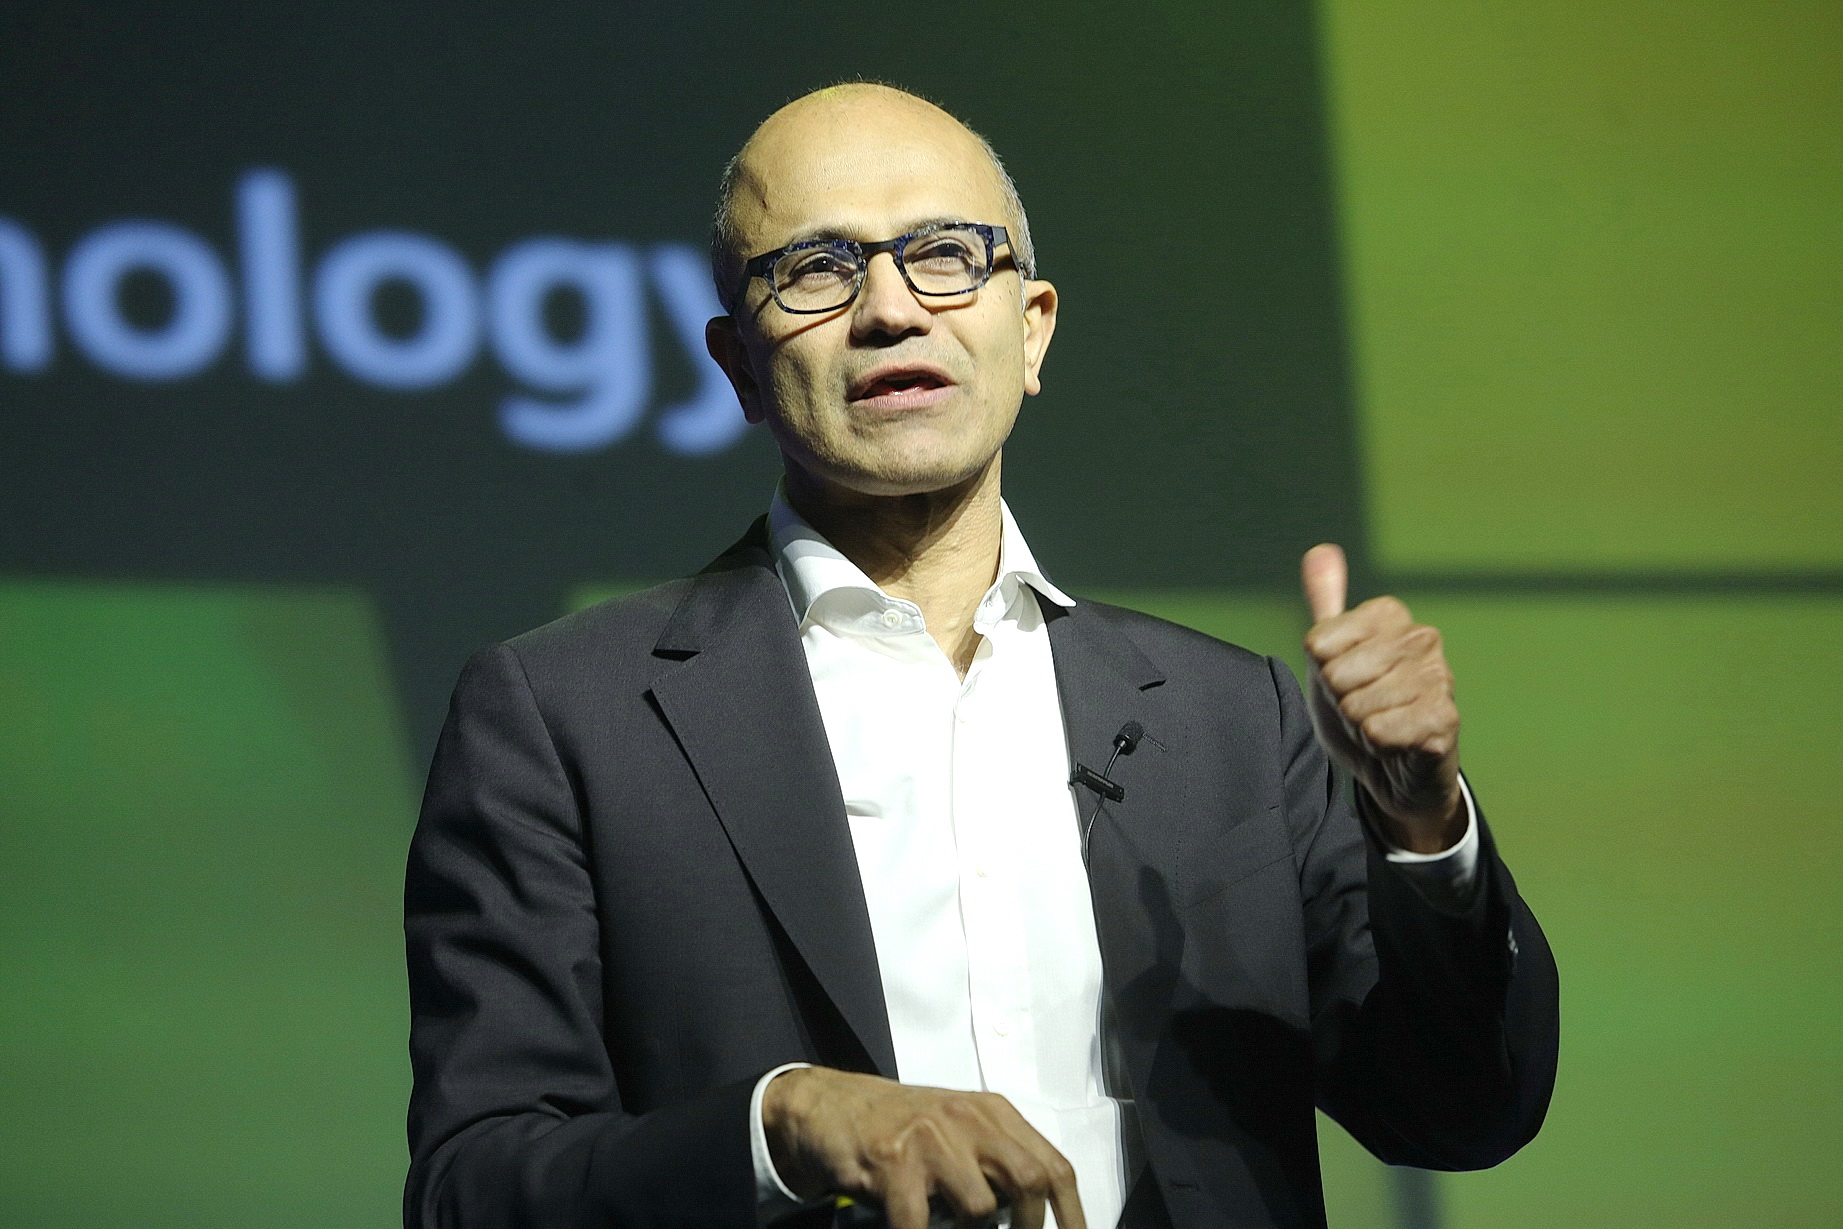 10 great reasons why Microsoft loves Israeli ingenuity